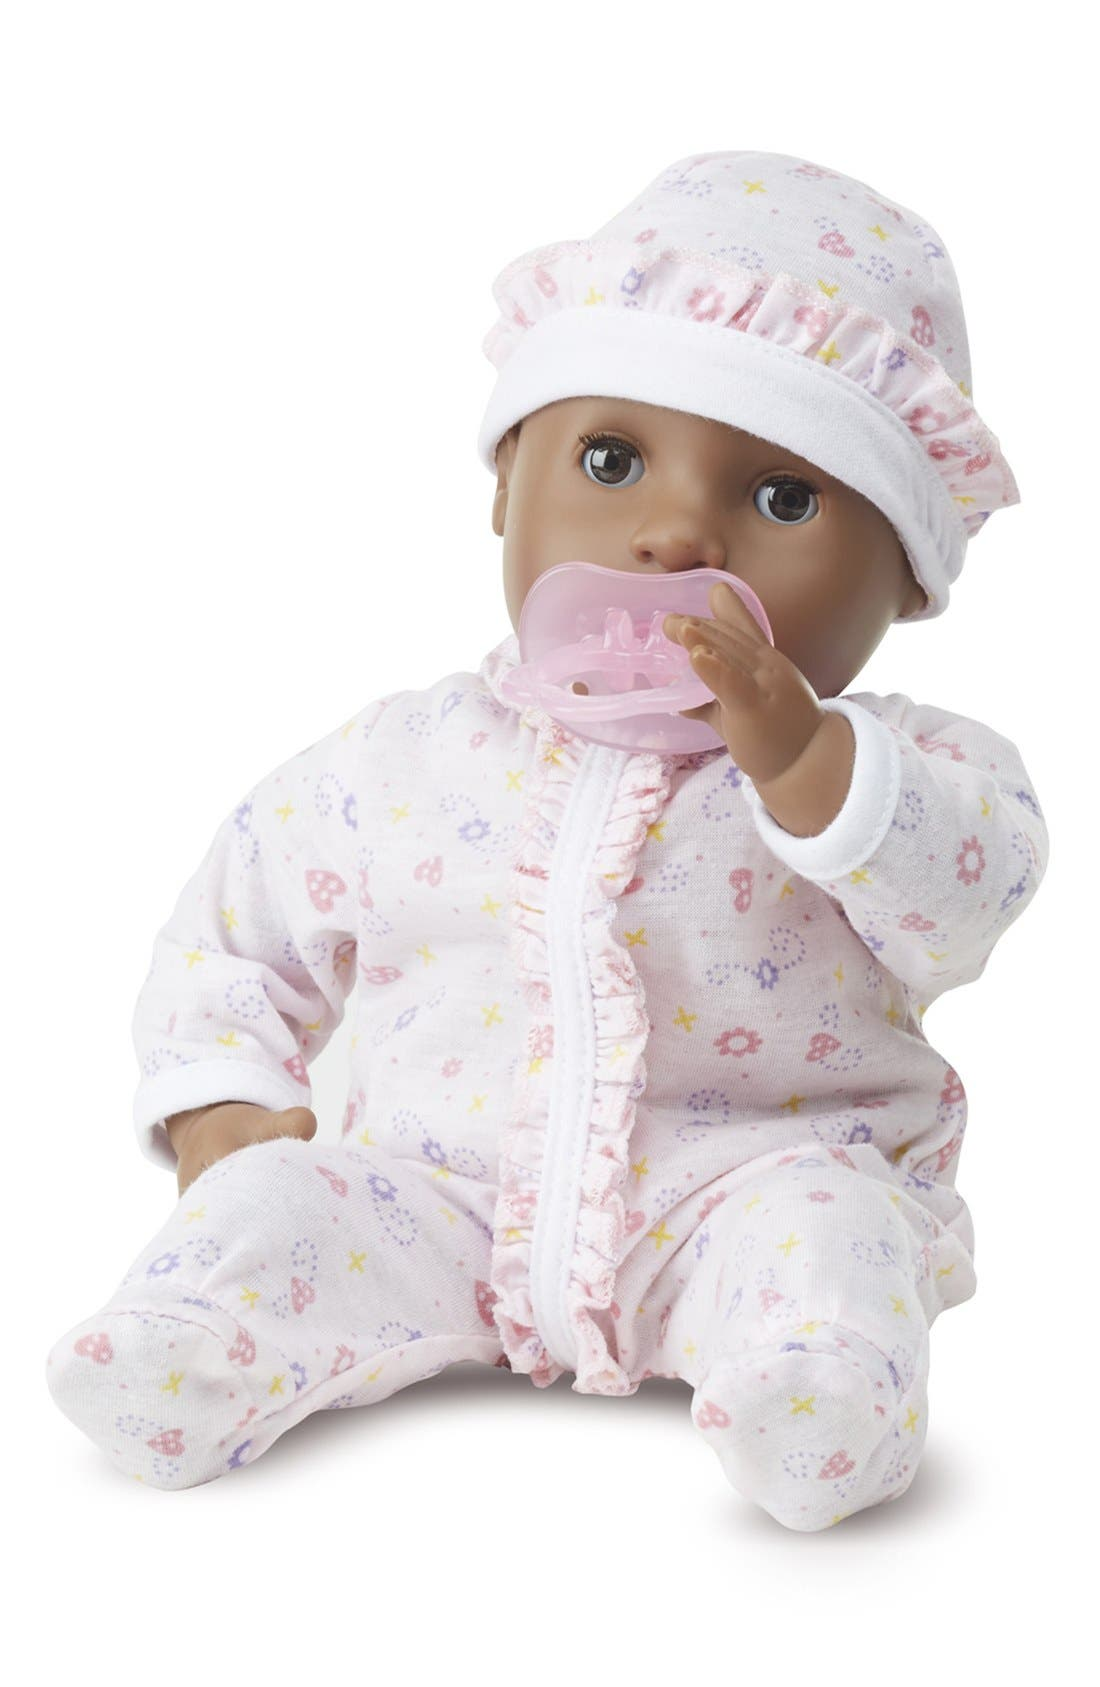 'Mine to Love - Gabrielle' Baby Doll,                             Main thumbnail 1, color,                             100